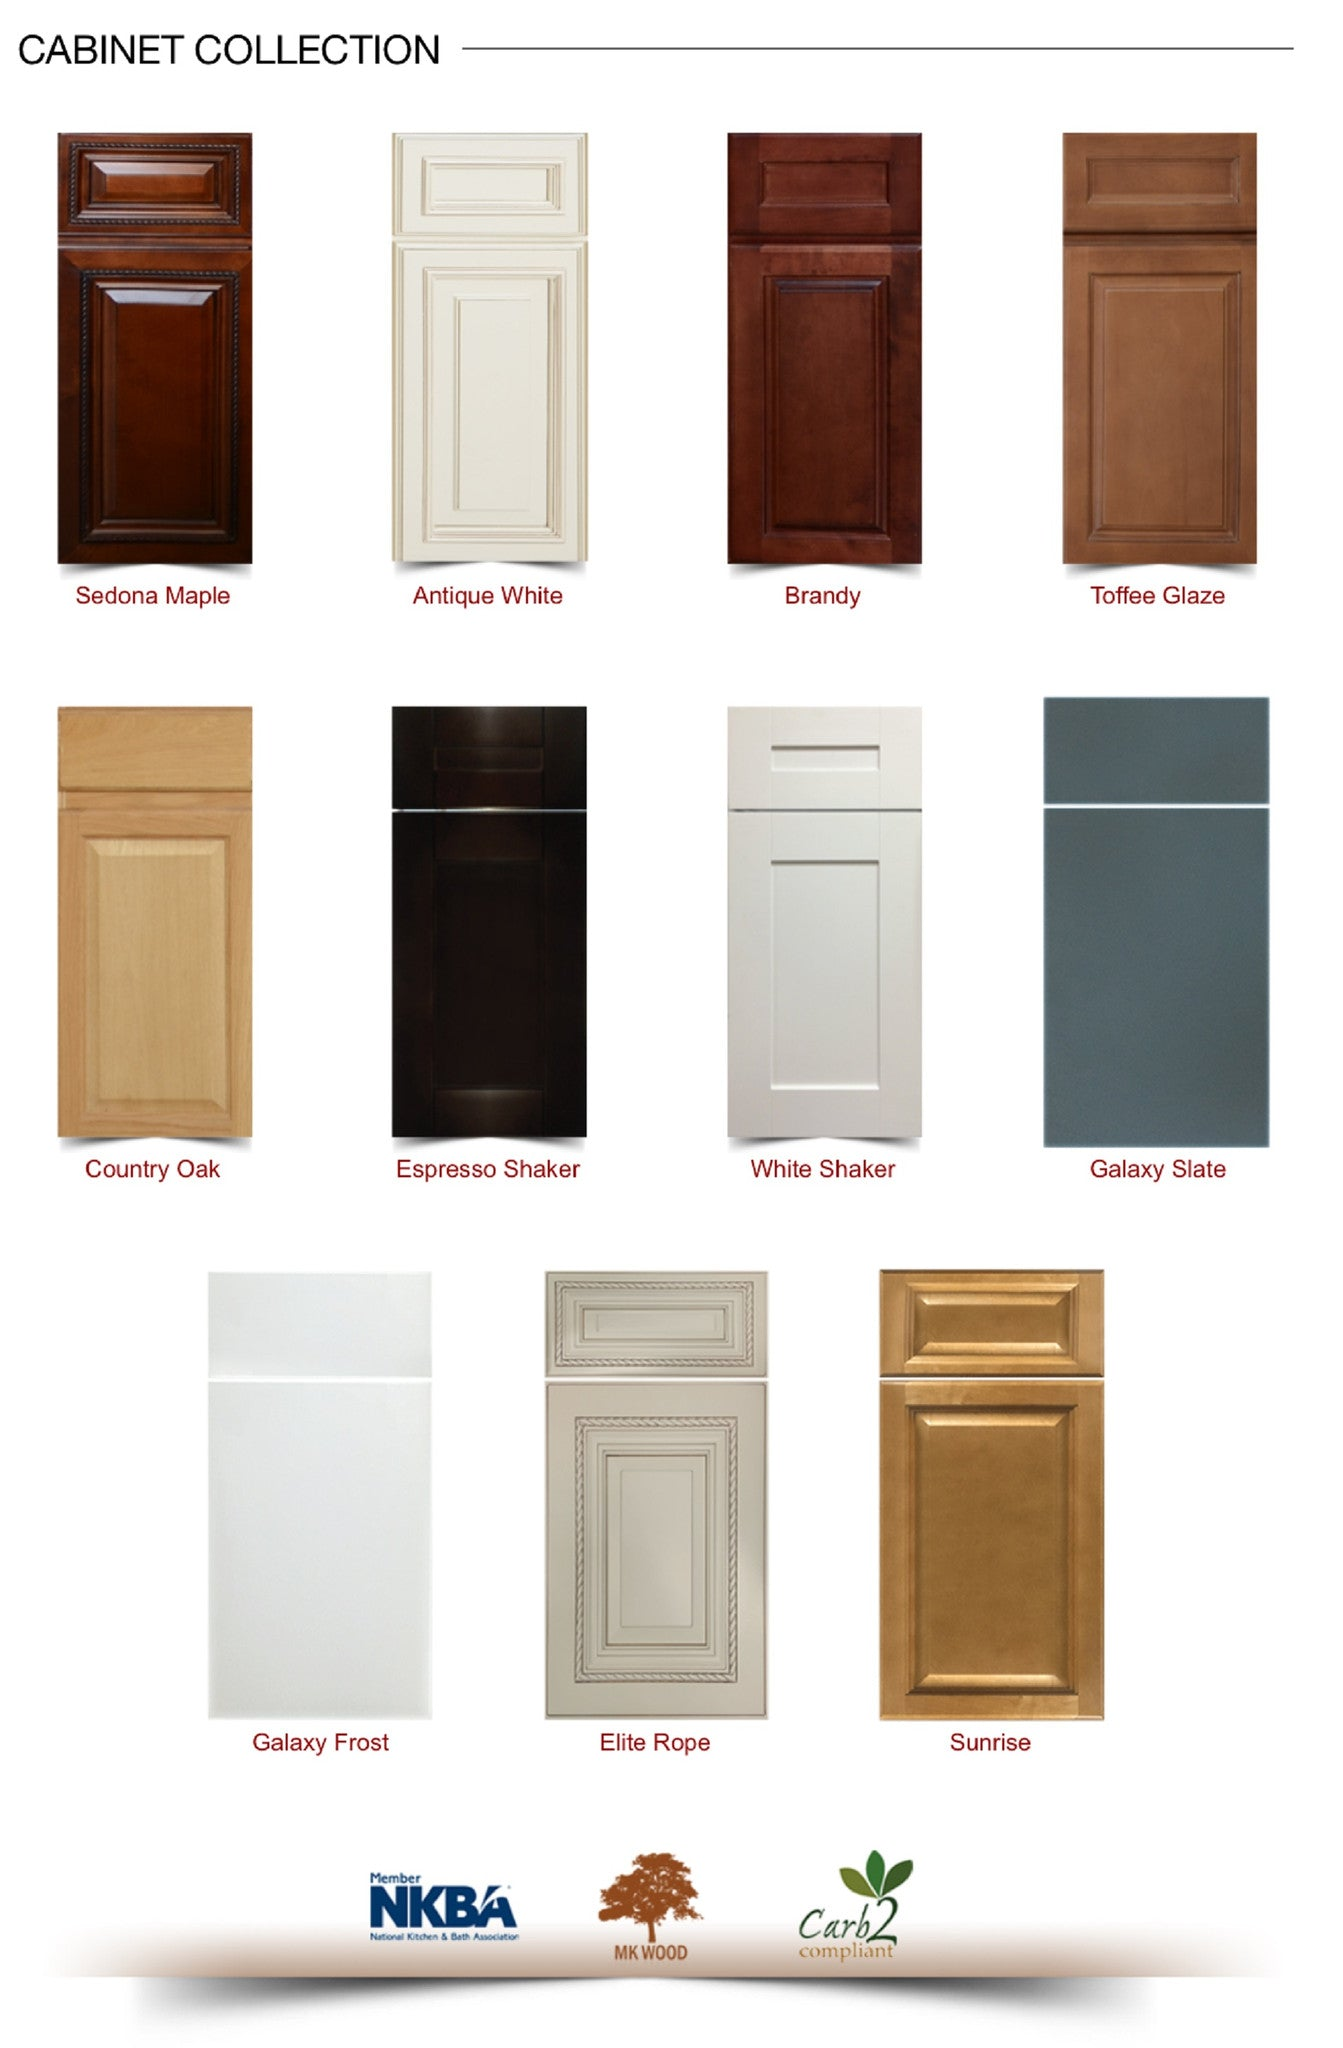 So With MK Wood Not Only Are You Getting The Finest Cabinetry And Highest  Quality At An Affordable Price, You Are Also Keeping The Earth A Little  More ...